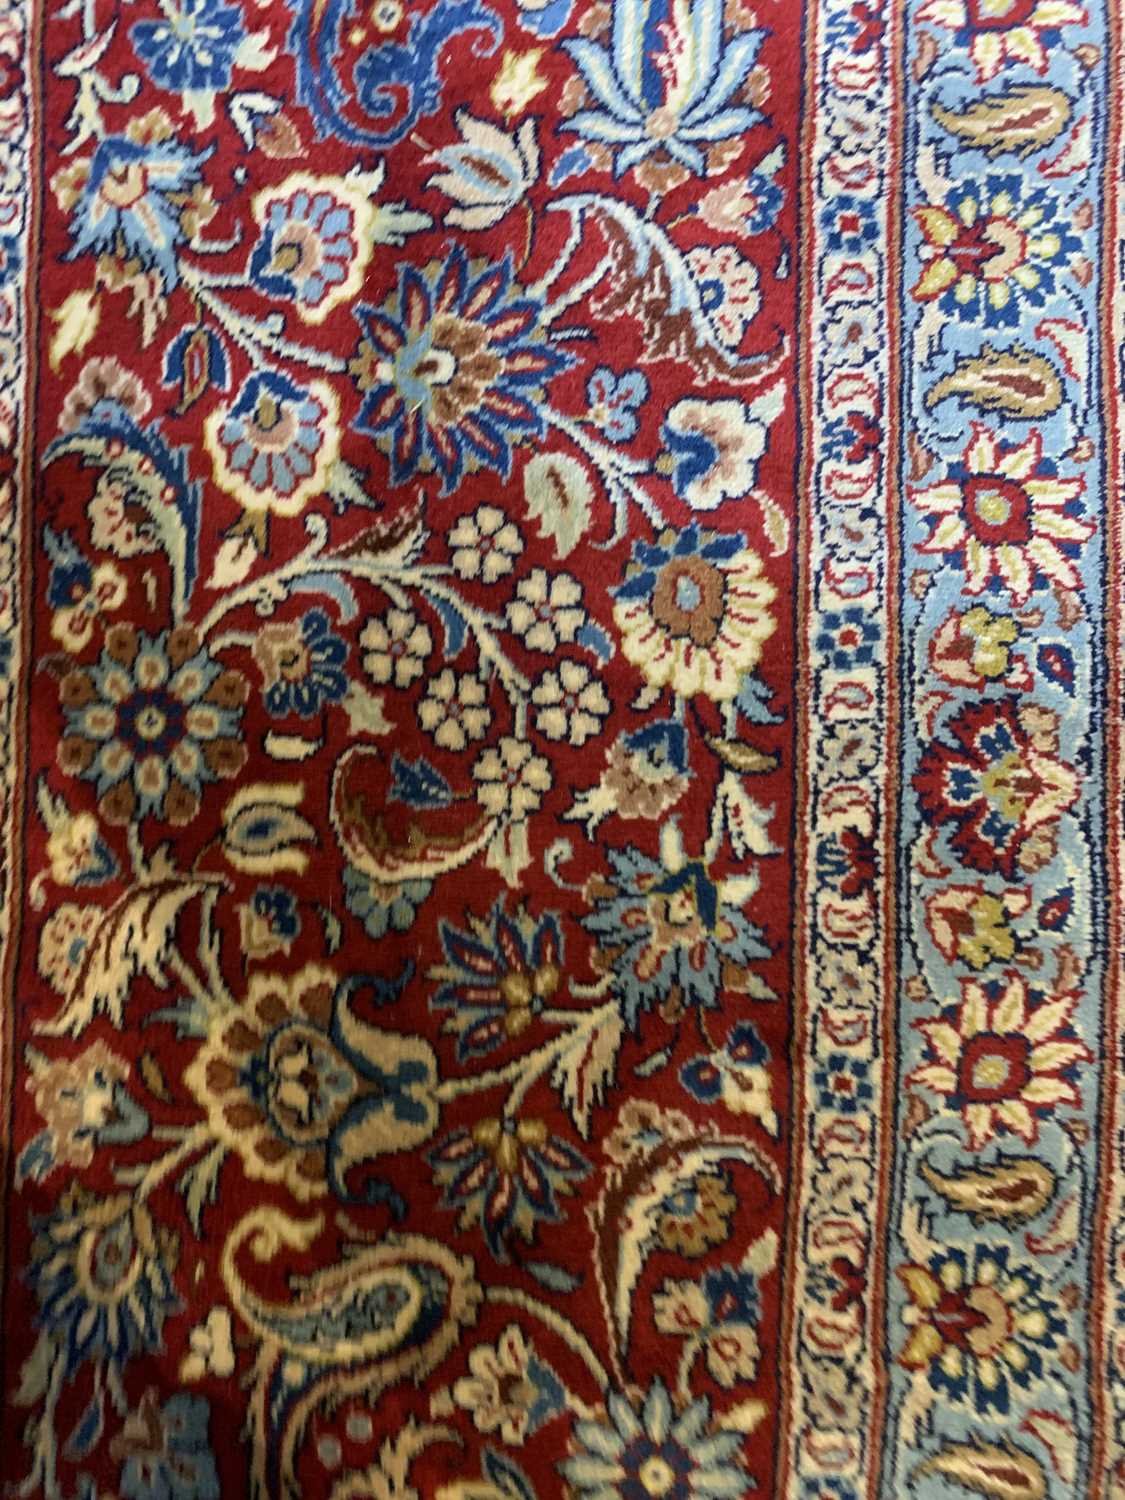 A large Persian Khorassan carpet, - Image 8 of 17